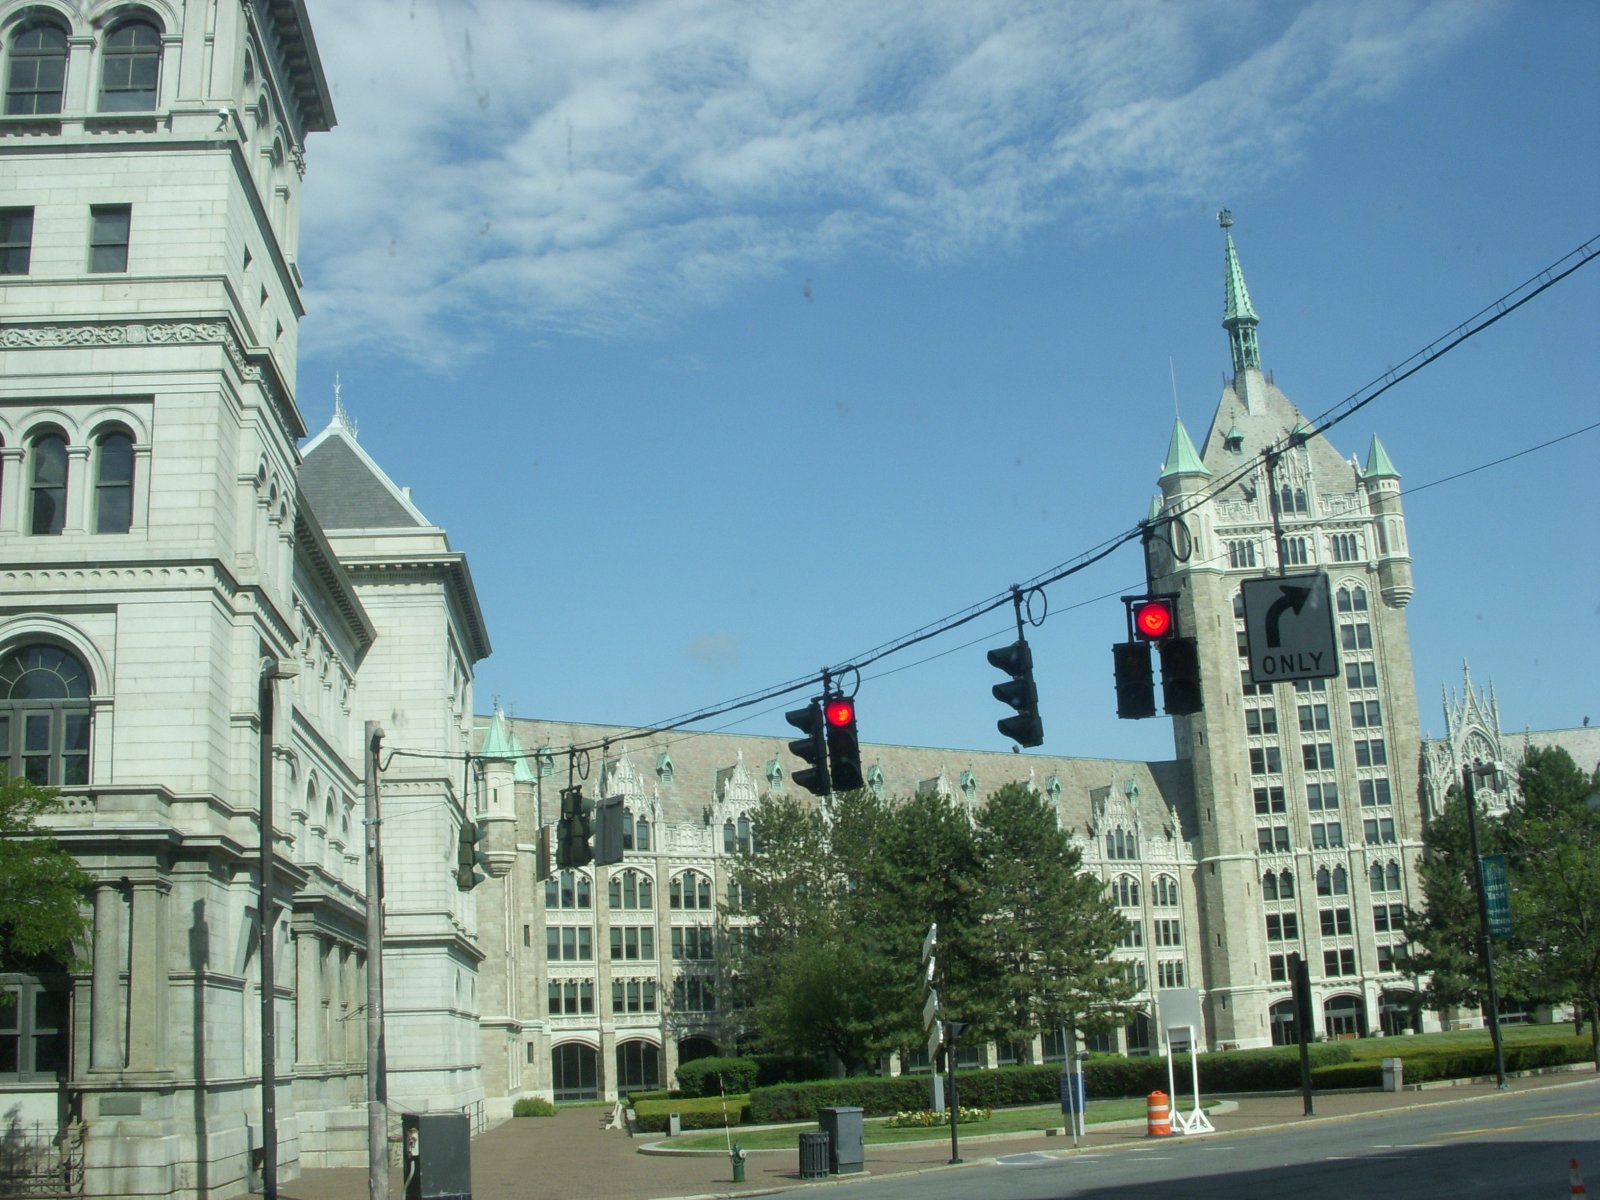 Click image for larger version  Name:Mass. Conn, Penn, Aug 2011 023.jpg Views:74 Size:327.8 KB ID:137559